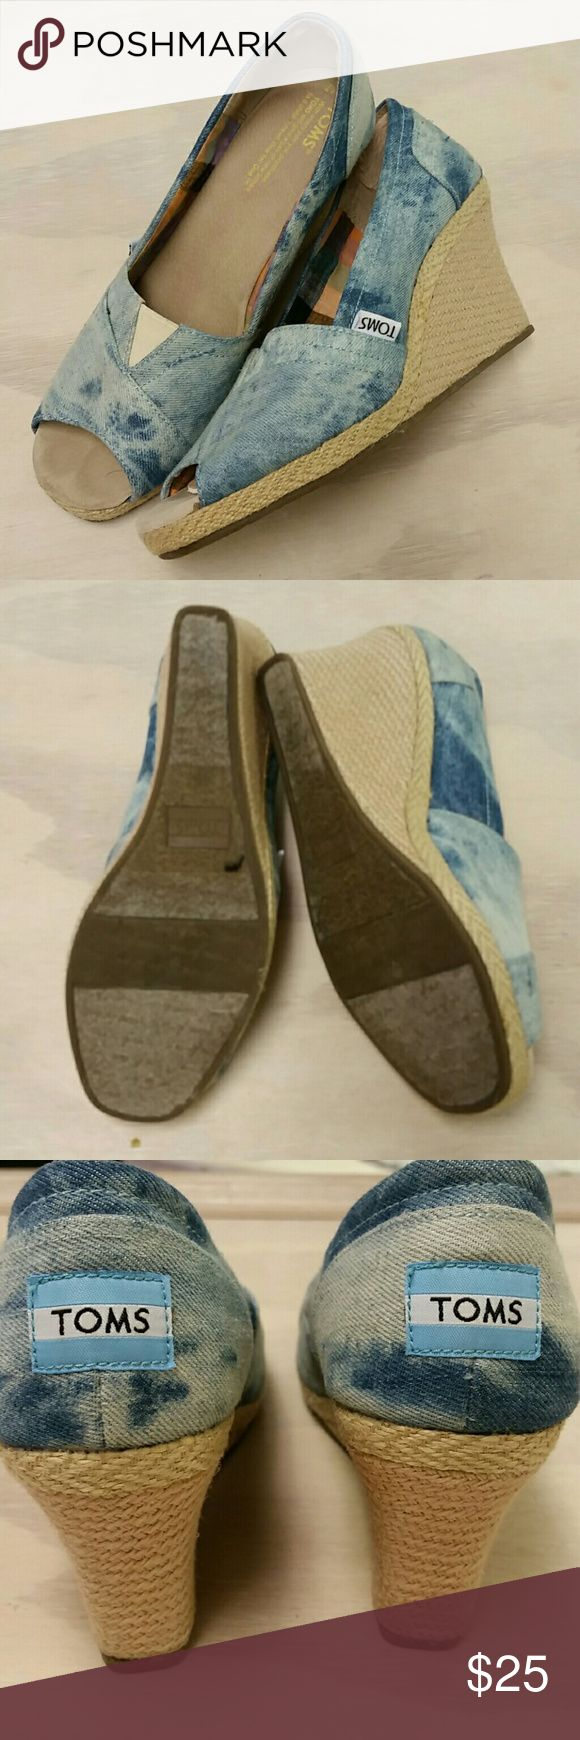 Toms wedges Toms peep toe wedges TOMS Shoes Wedges